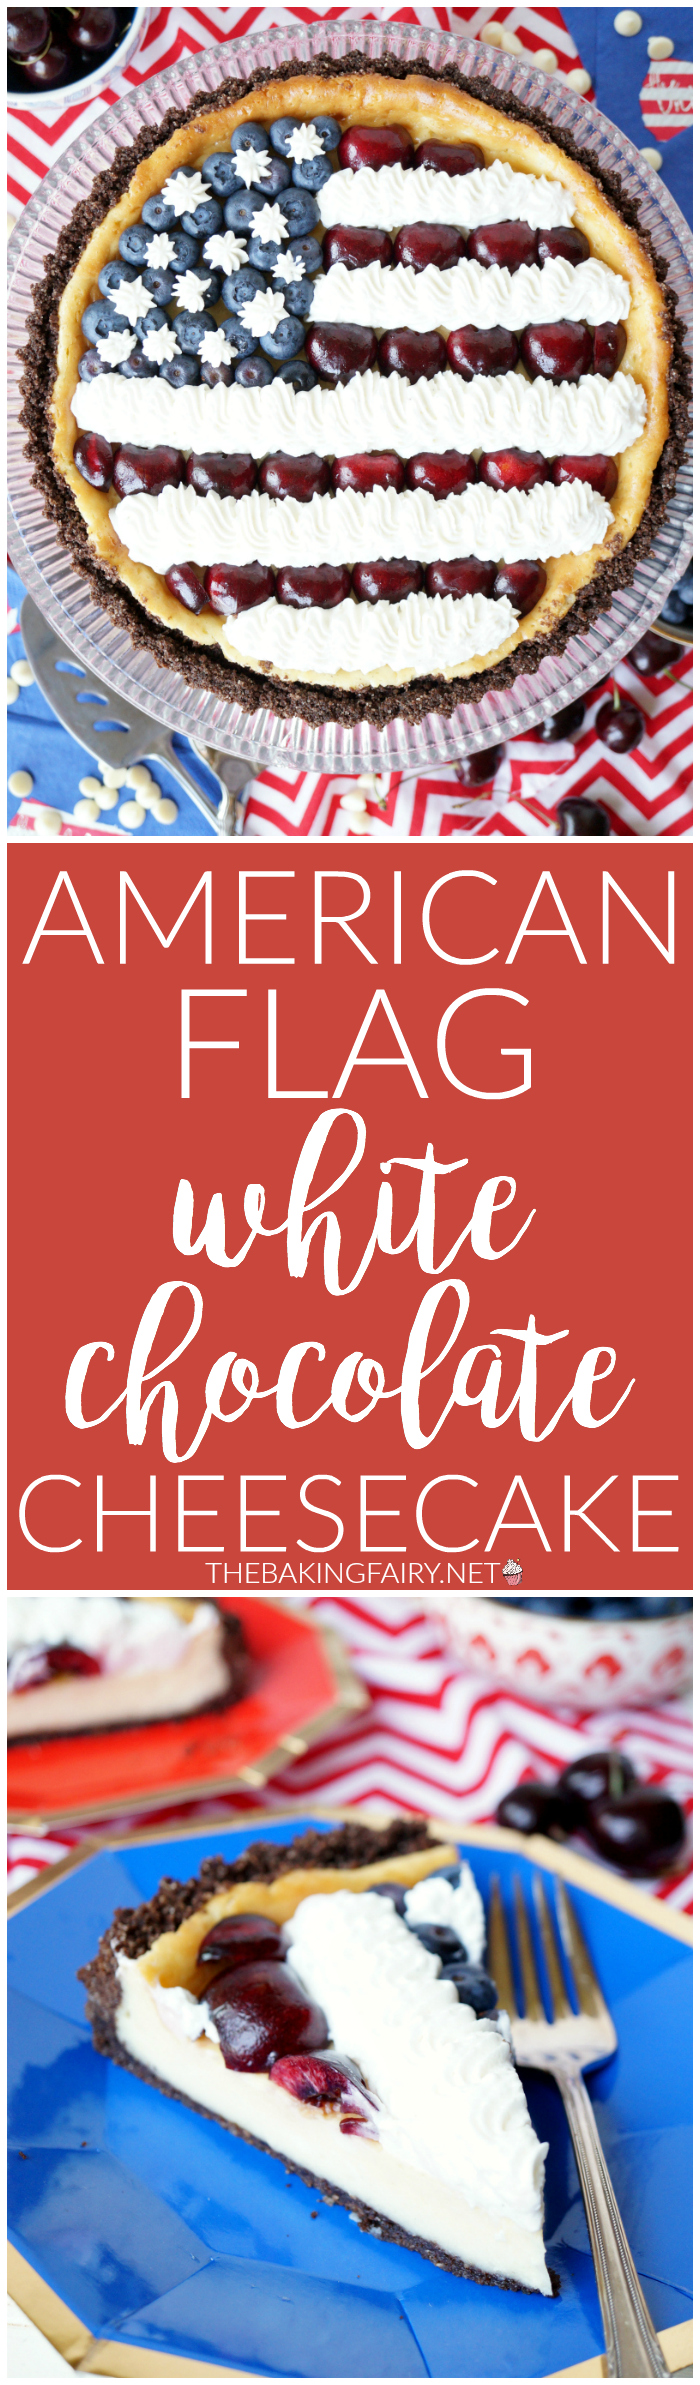 American flag white chocolate cheesecake | The Baking Fairy